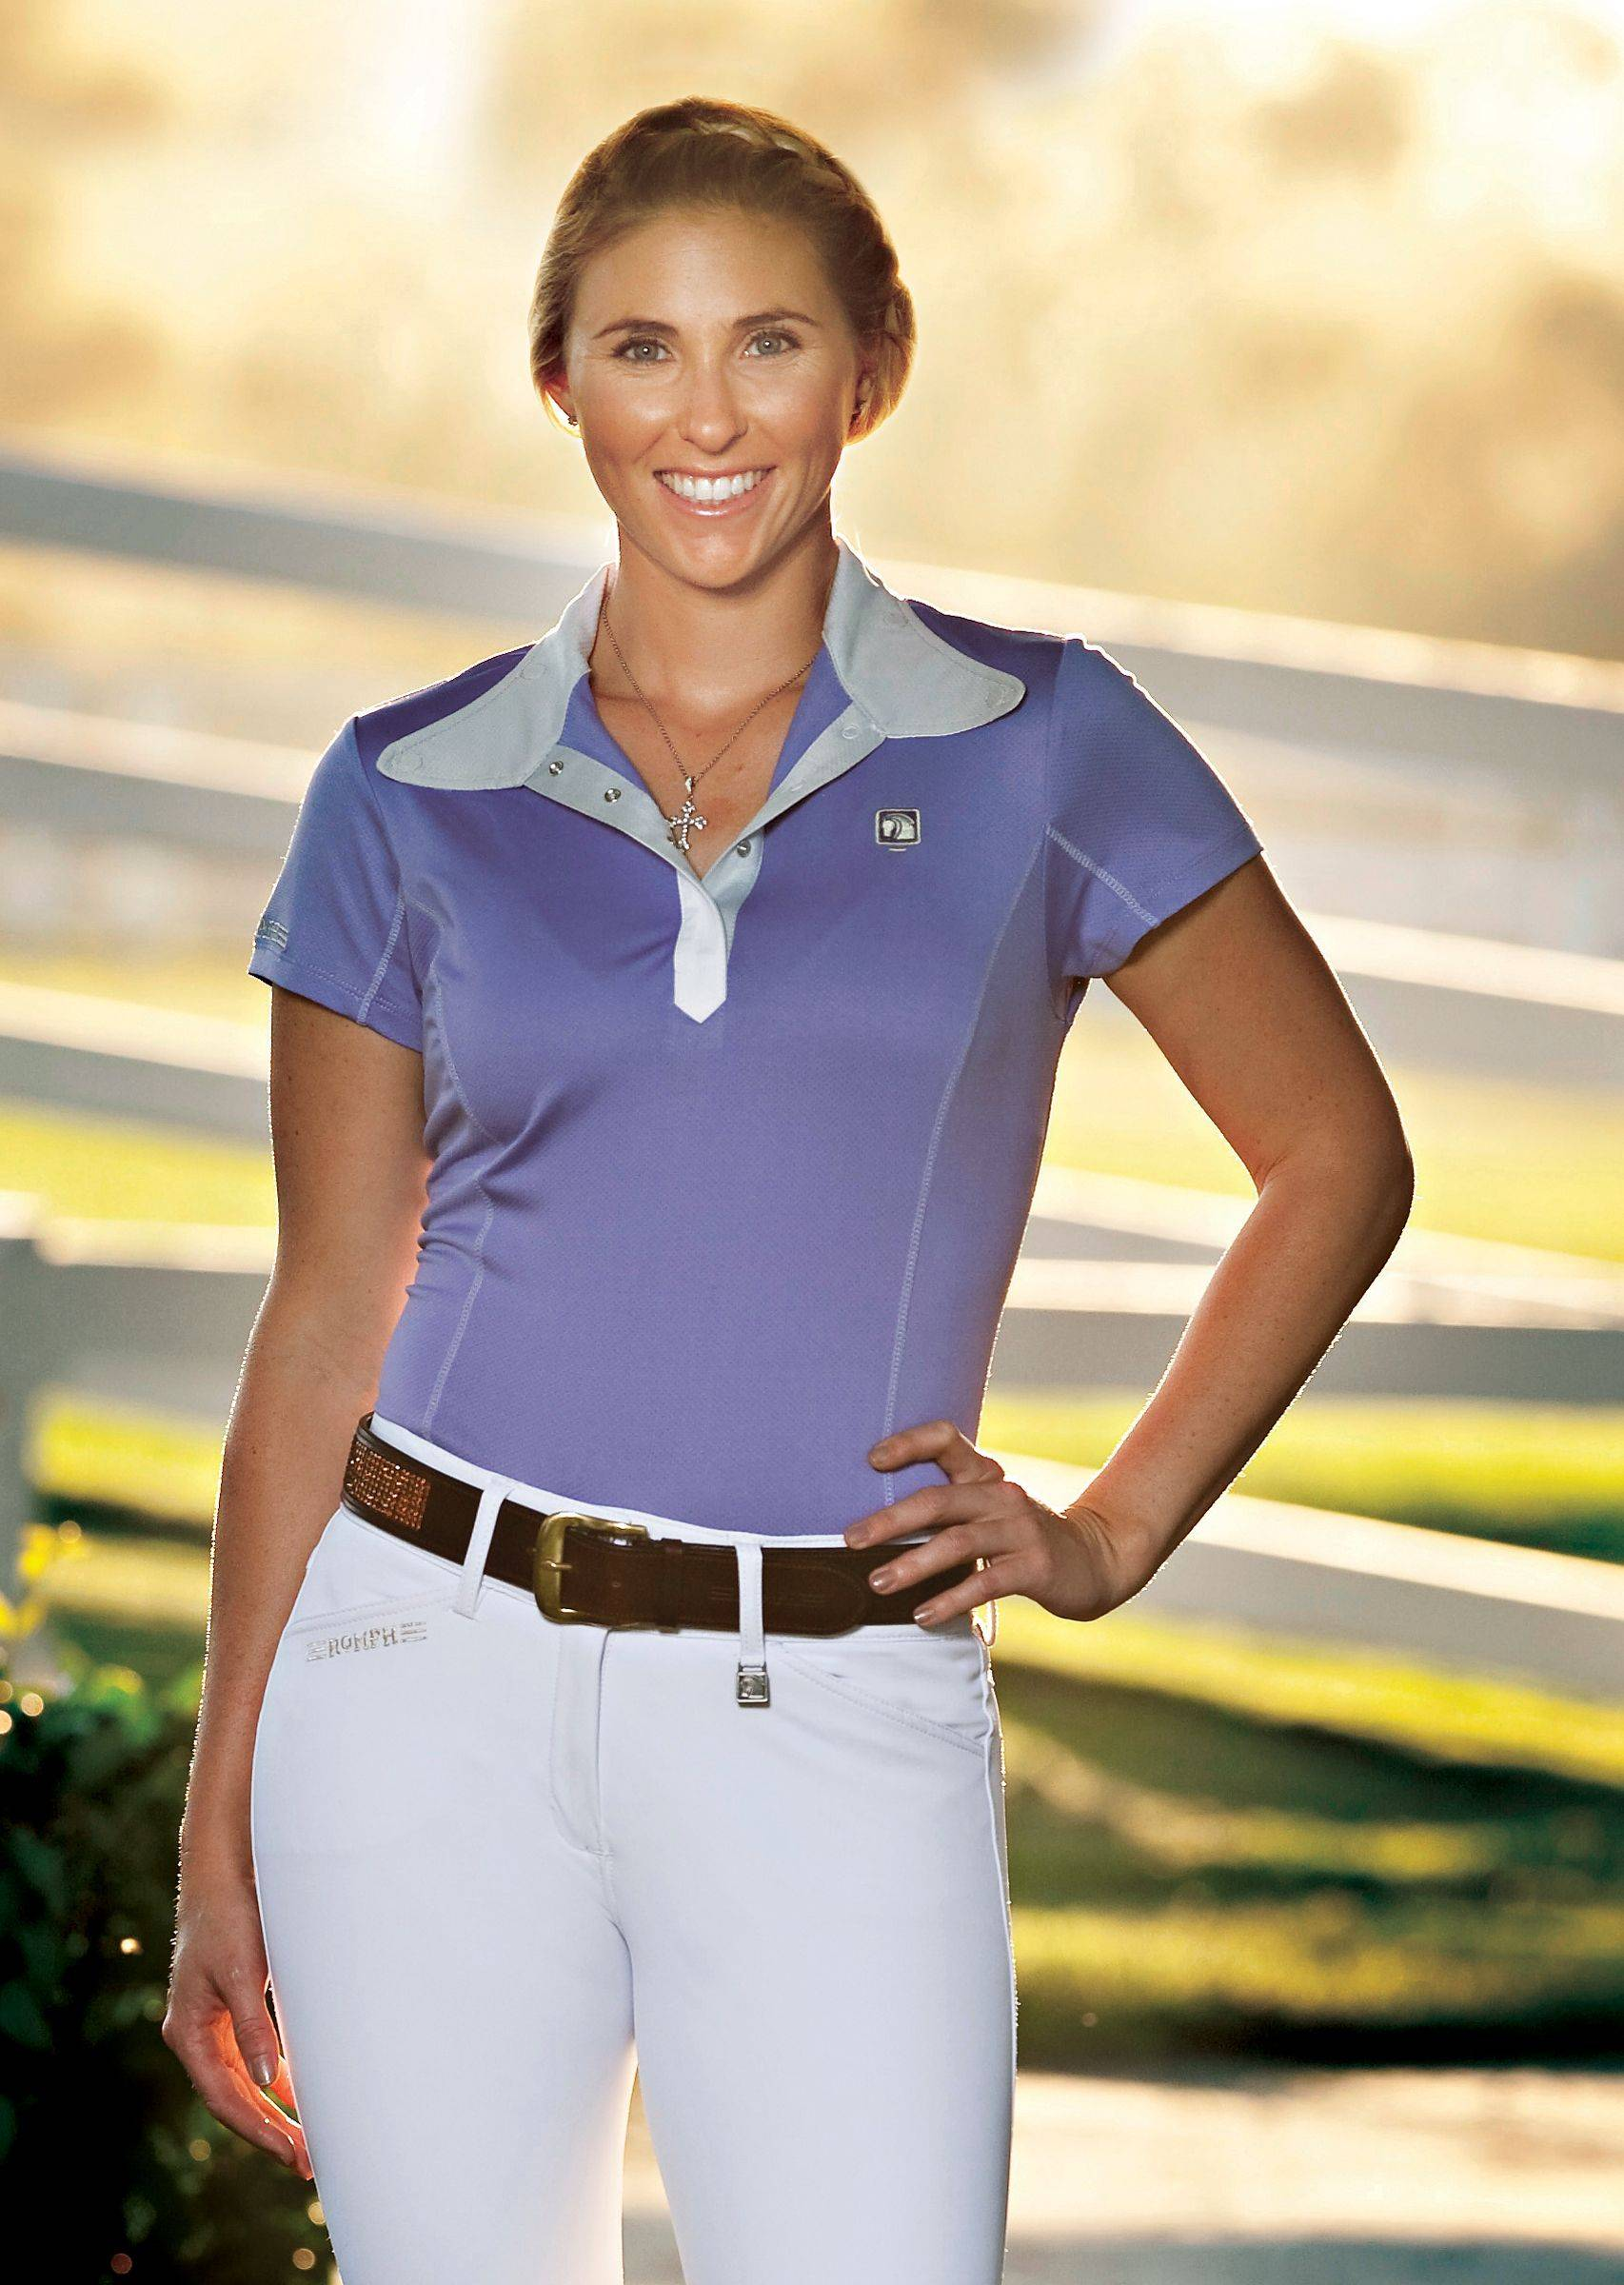 Romfh Ladies Competitor Show Shirt - Short Sleeve